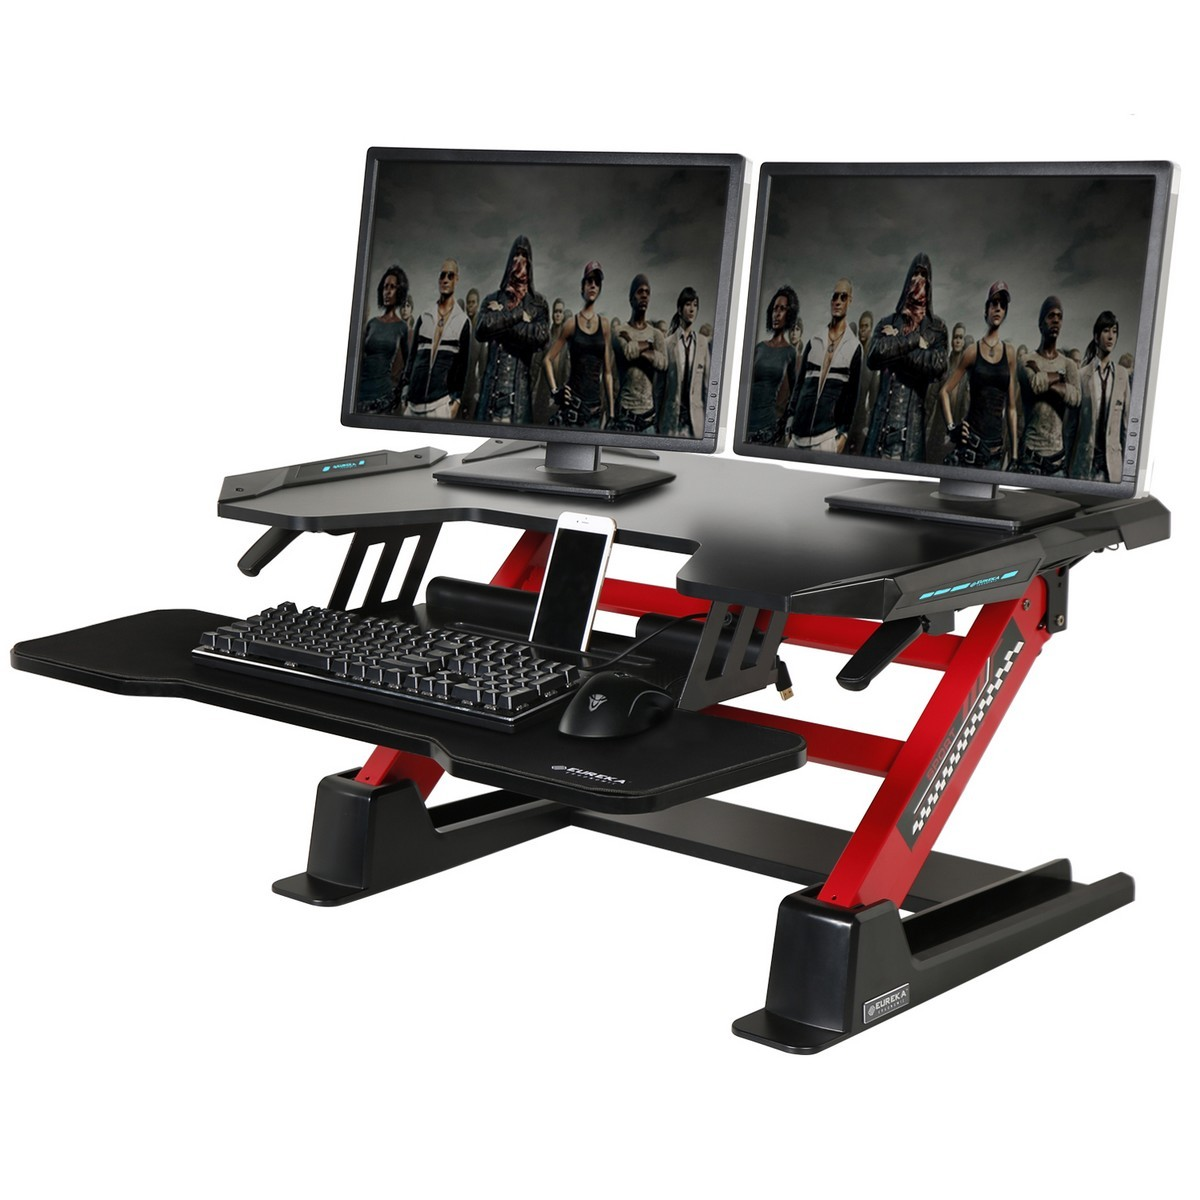 Eureka Ergonomic Adjustable Stand Up Desk Converter, Quick Sit to Stand Tabletop Riser, Black / Red